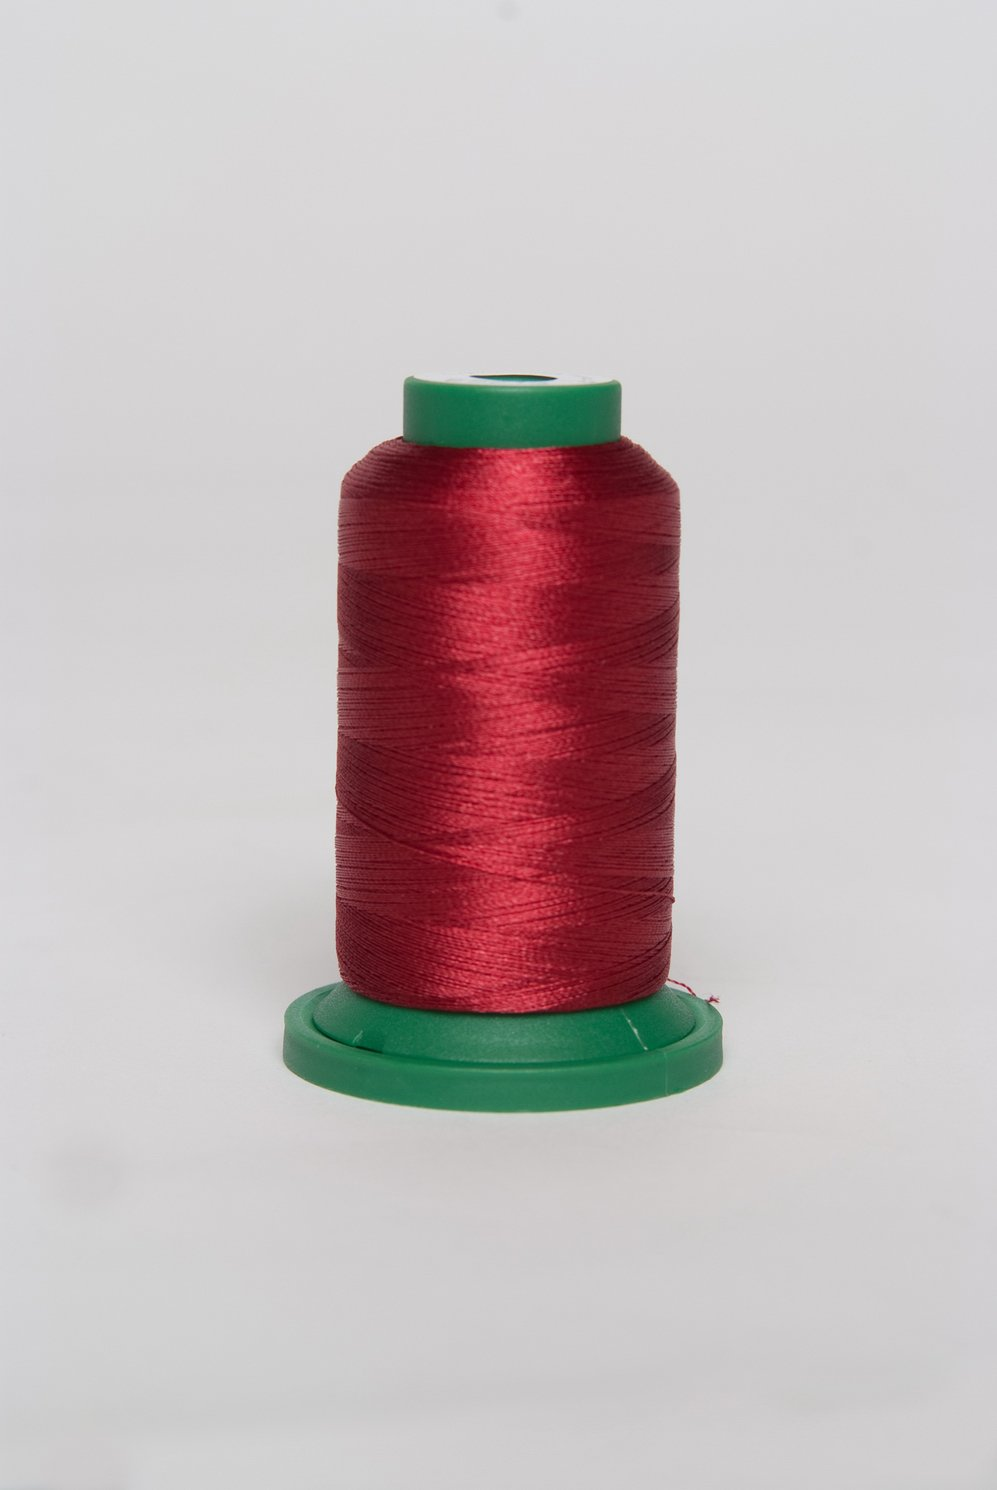 Jockey Red - ES213 - Exquisite Embroidery Thread - 1000 meters